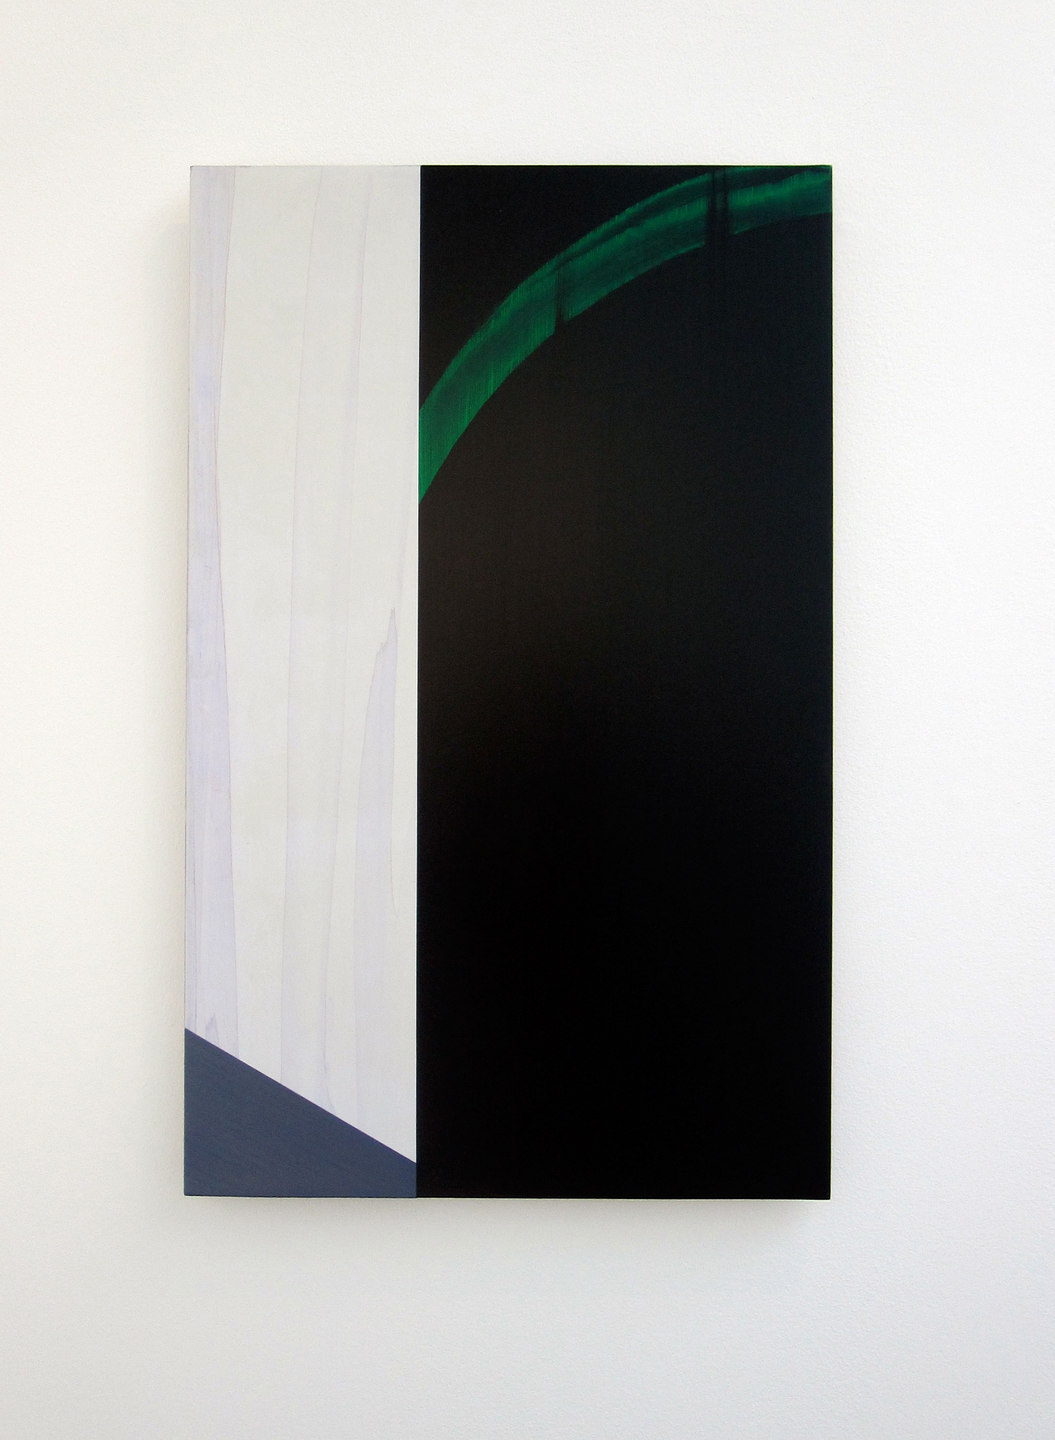 Andy Jackson, The Event, 2010, Acrylic and Metallic Acrylic on Board, (h.280mm x w.170mm), Cell Project Space